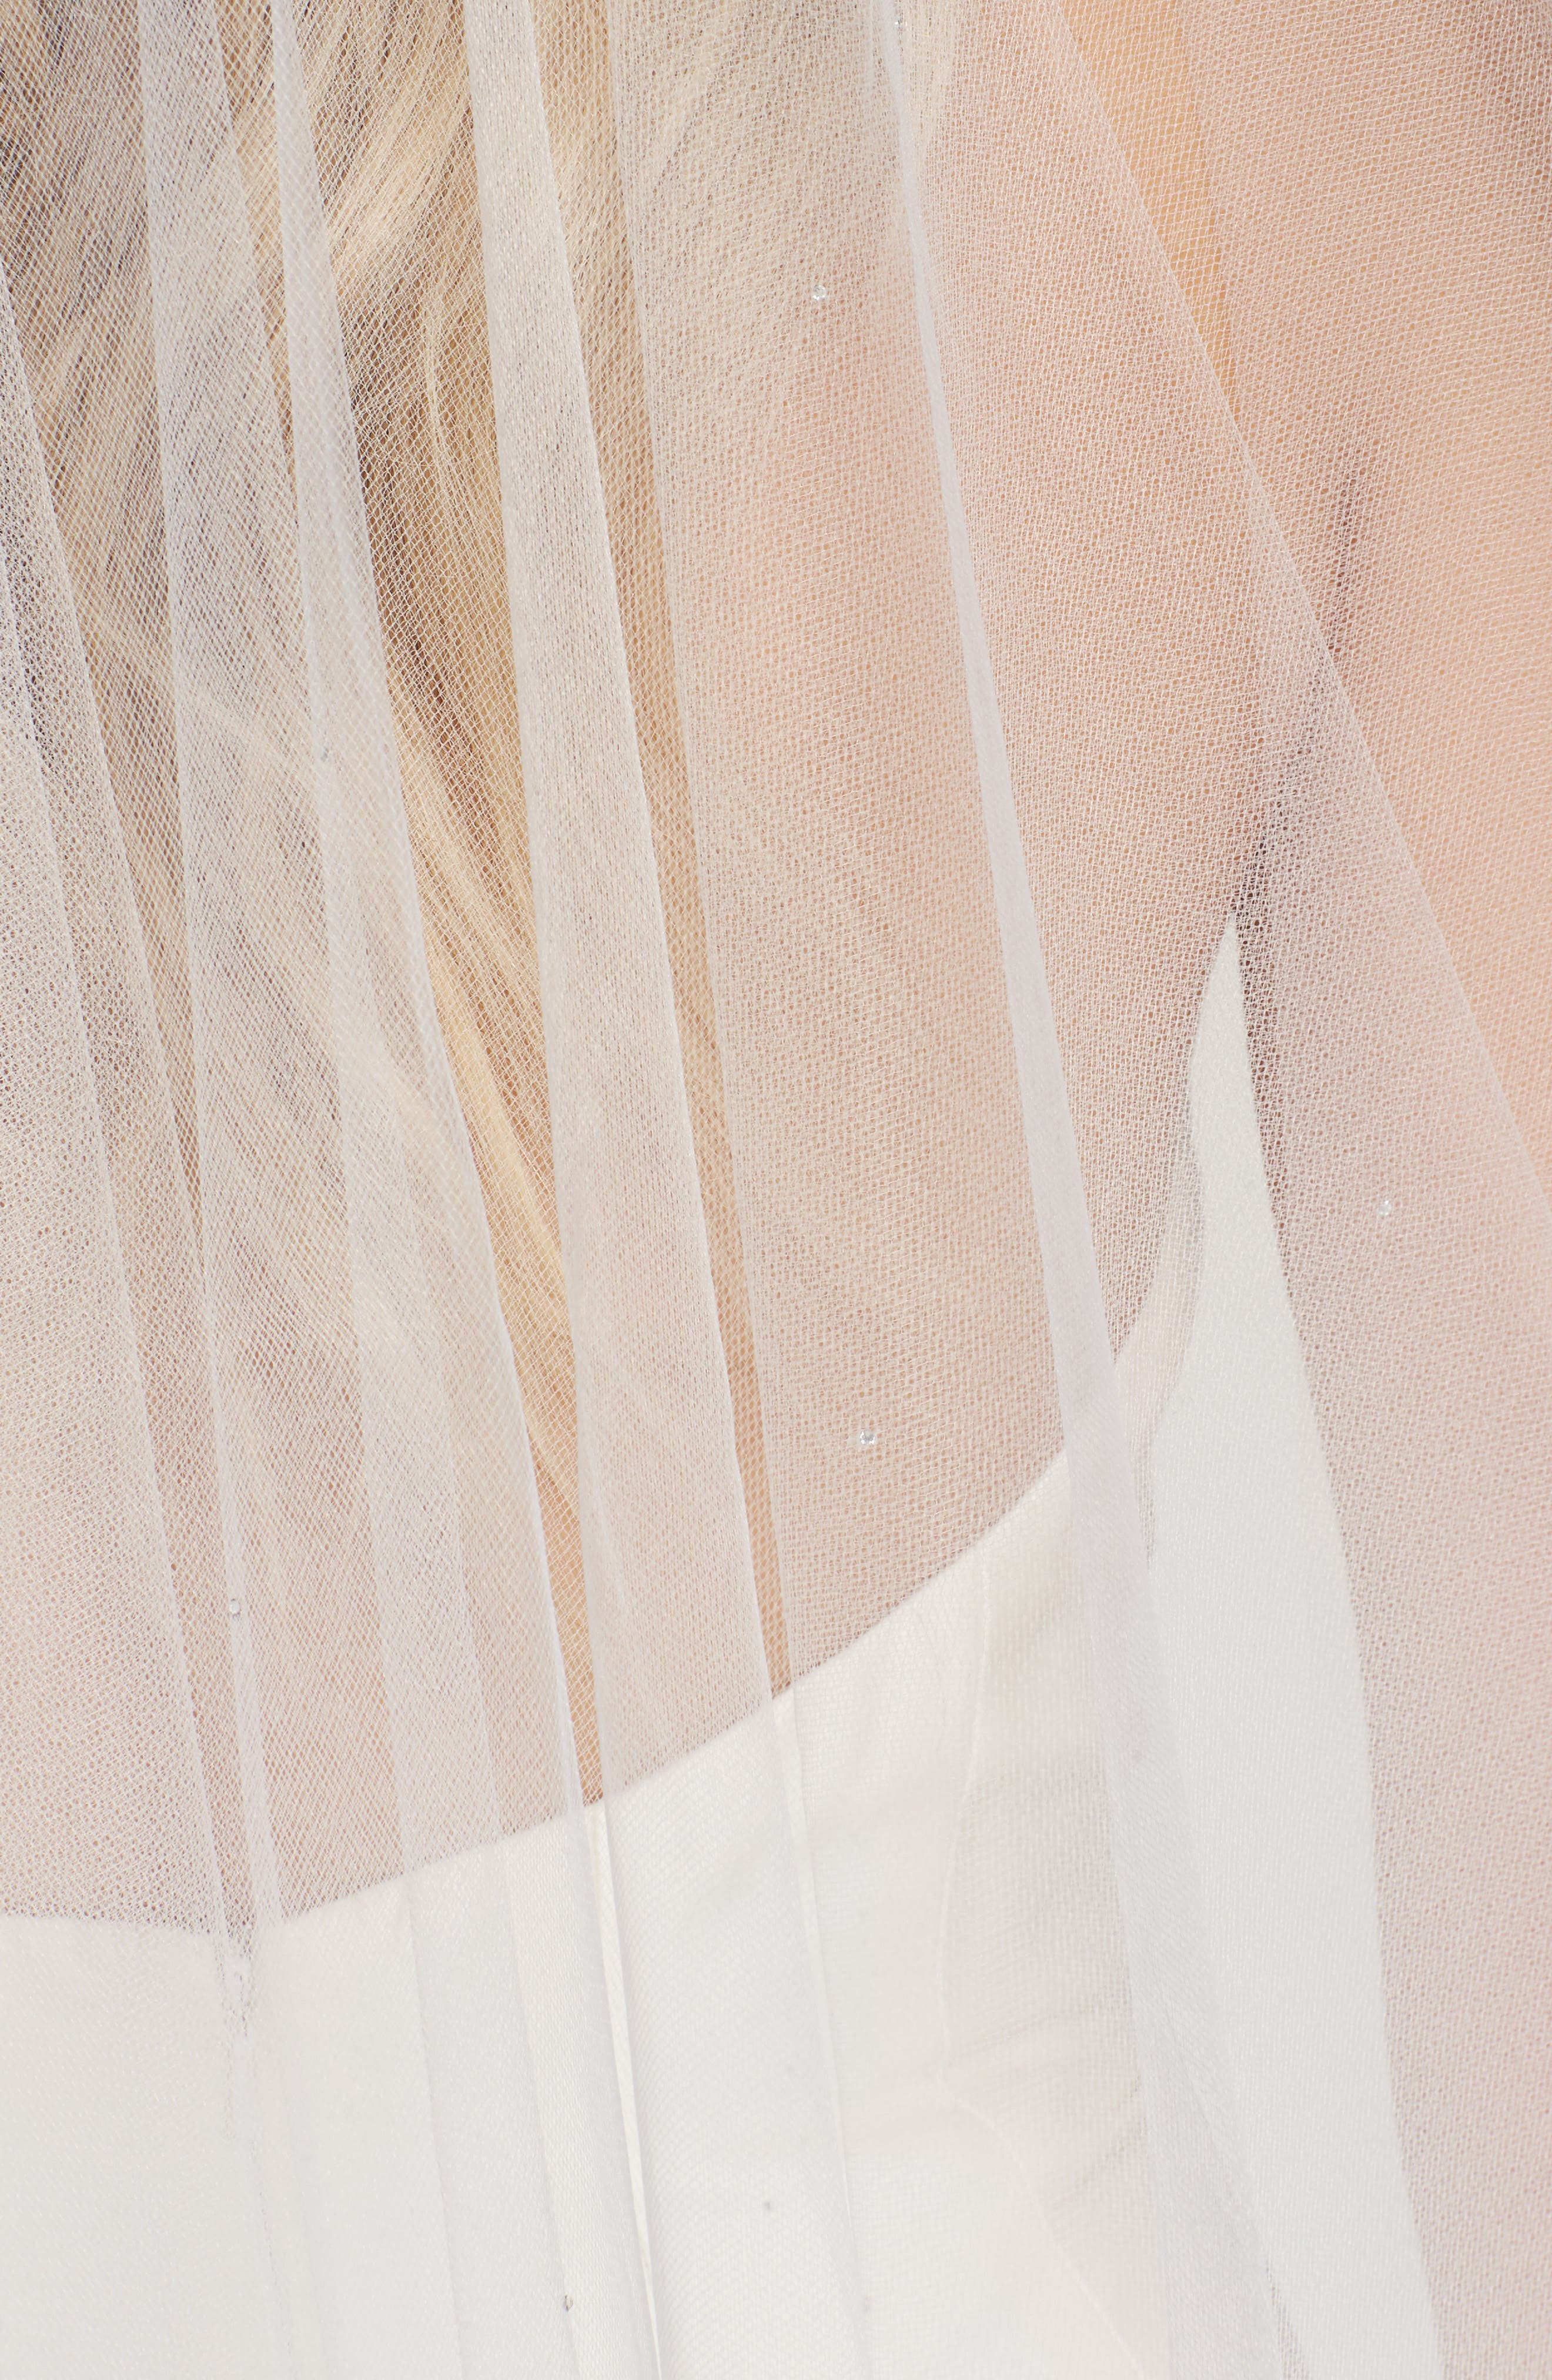 'Madeline - Crystal' Two Tier Veil,                             Alternate thumbnail 4, color,